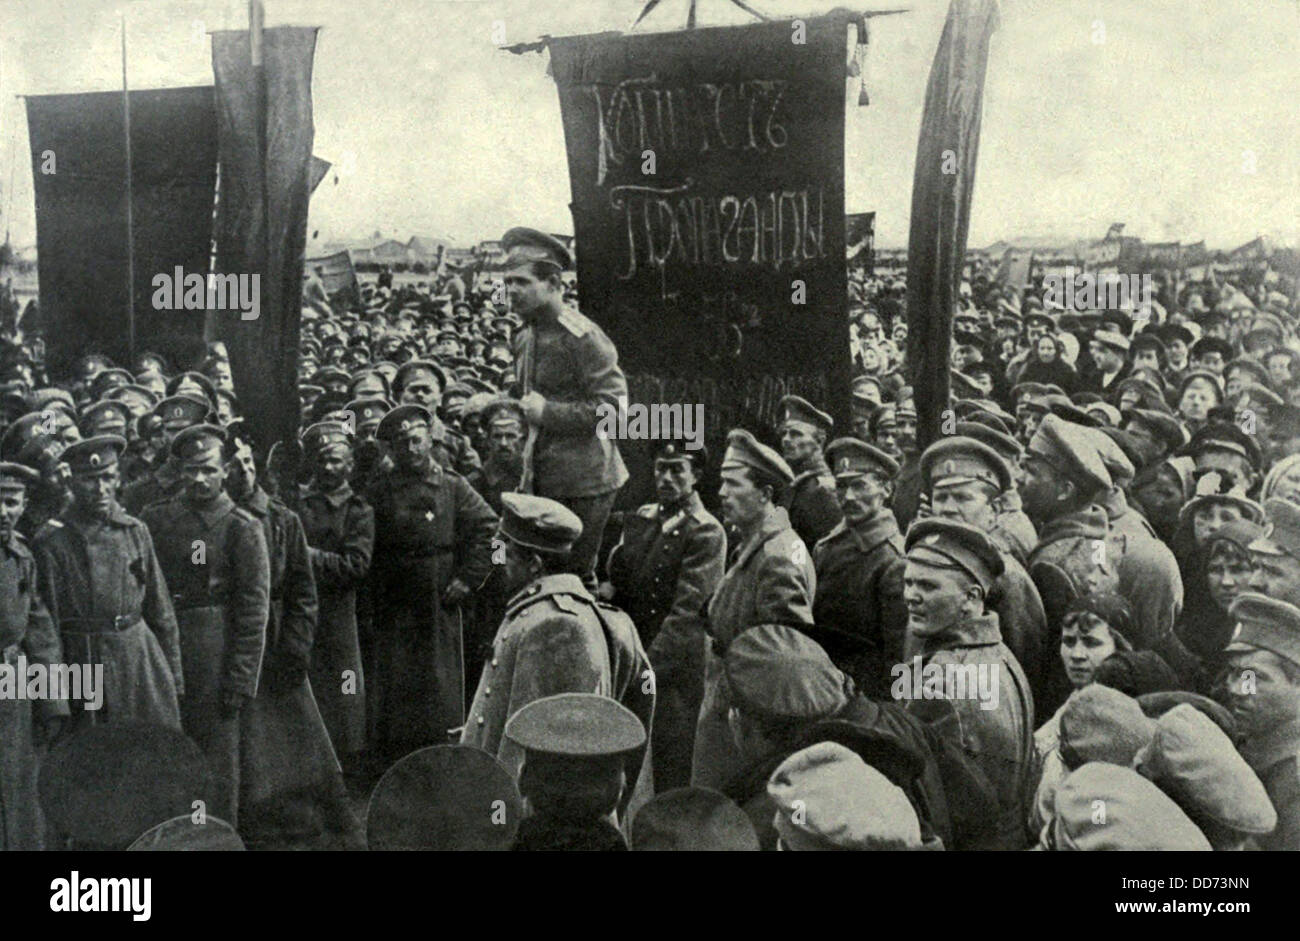 causes of the 1905 russian revolution essay Causes of the 1905 revolution essays: over 180,000 causes of the 1905 revolution essays, causes of the 1905 revolution term papers, causes of the 1905 revolution research paper, book reports 184 990 essays, term and research papers available for unlimited access.